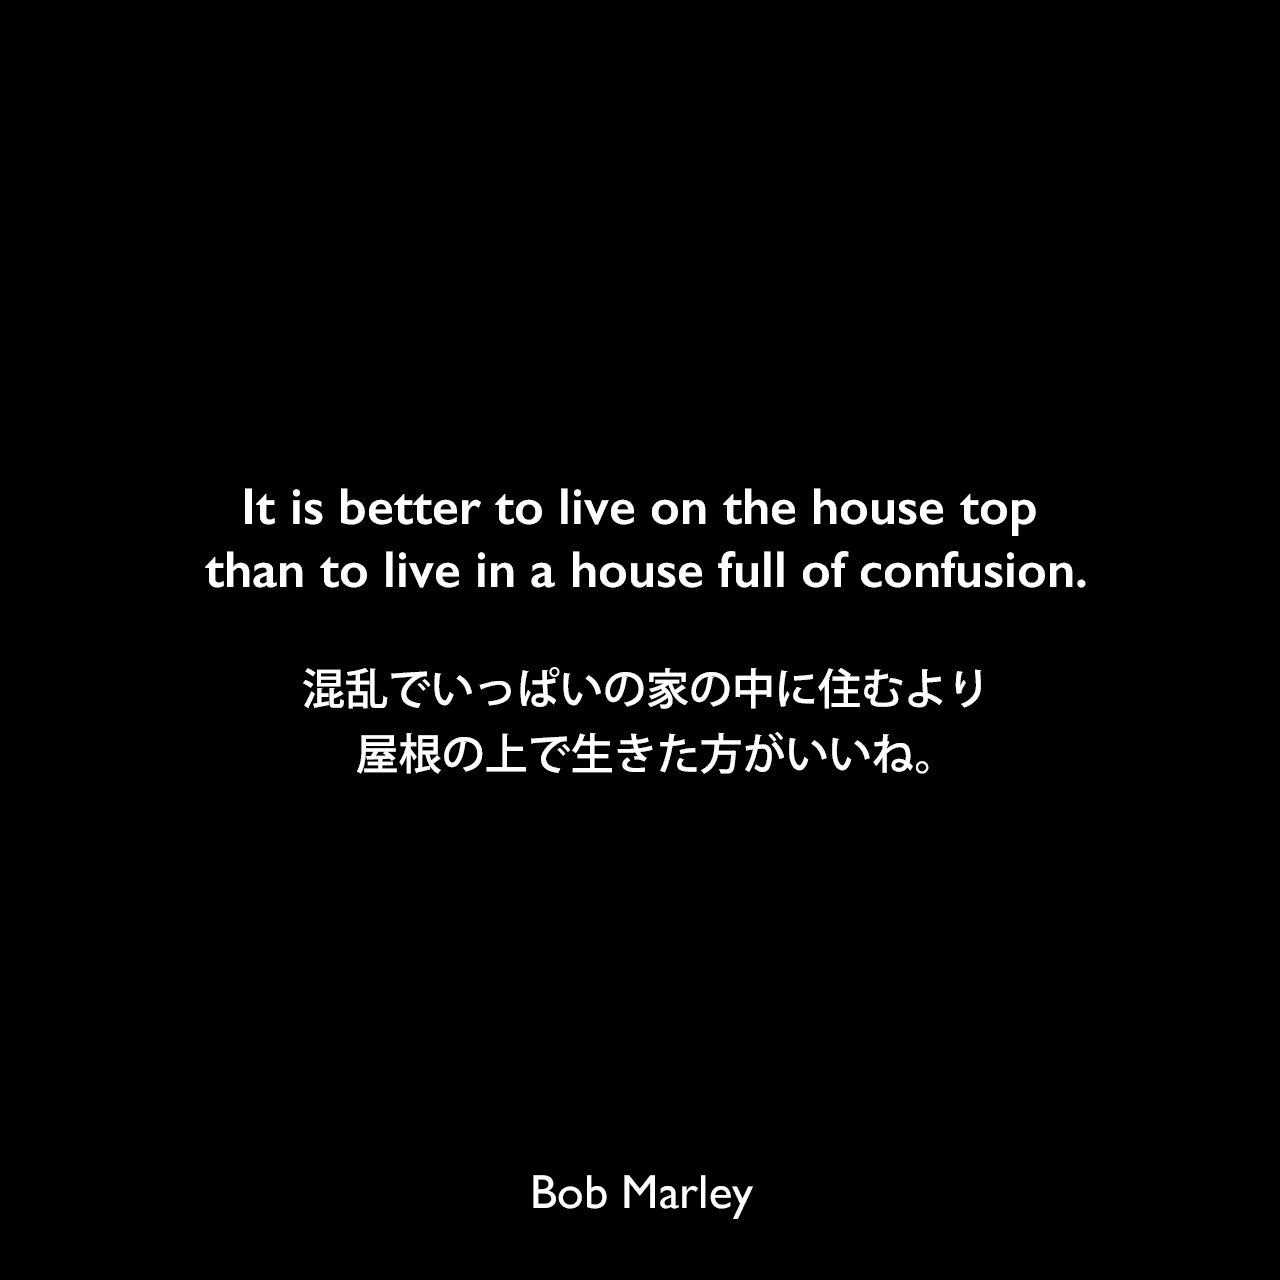 It is better to live on the house top than to live in a house full of confusion.混乱でいっぱいの家の中に住むより、屋根の上で生きた方がいいね。Bob Marley